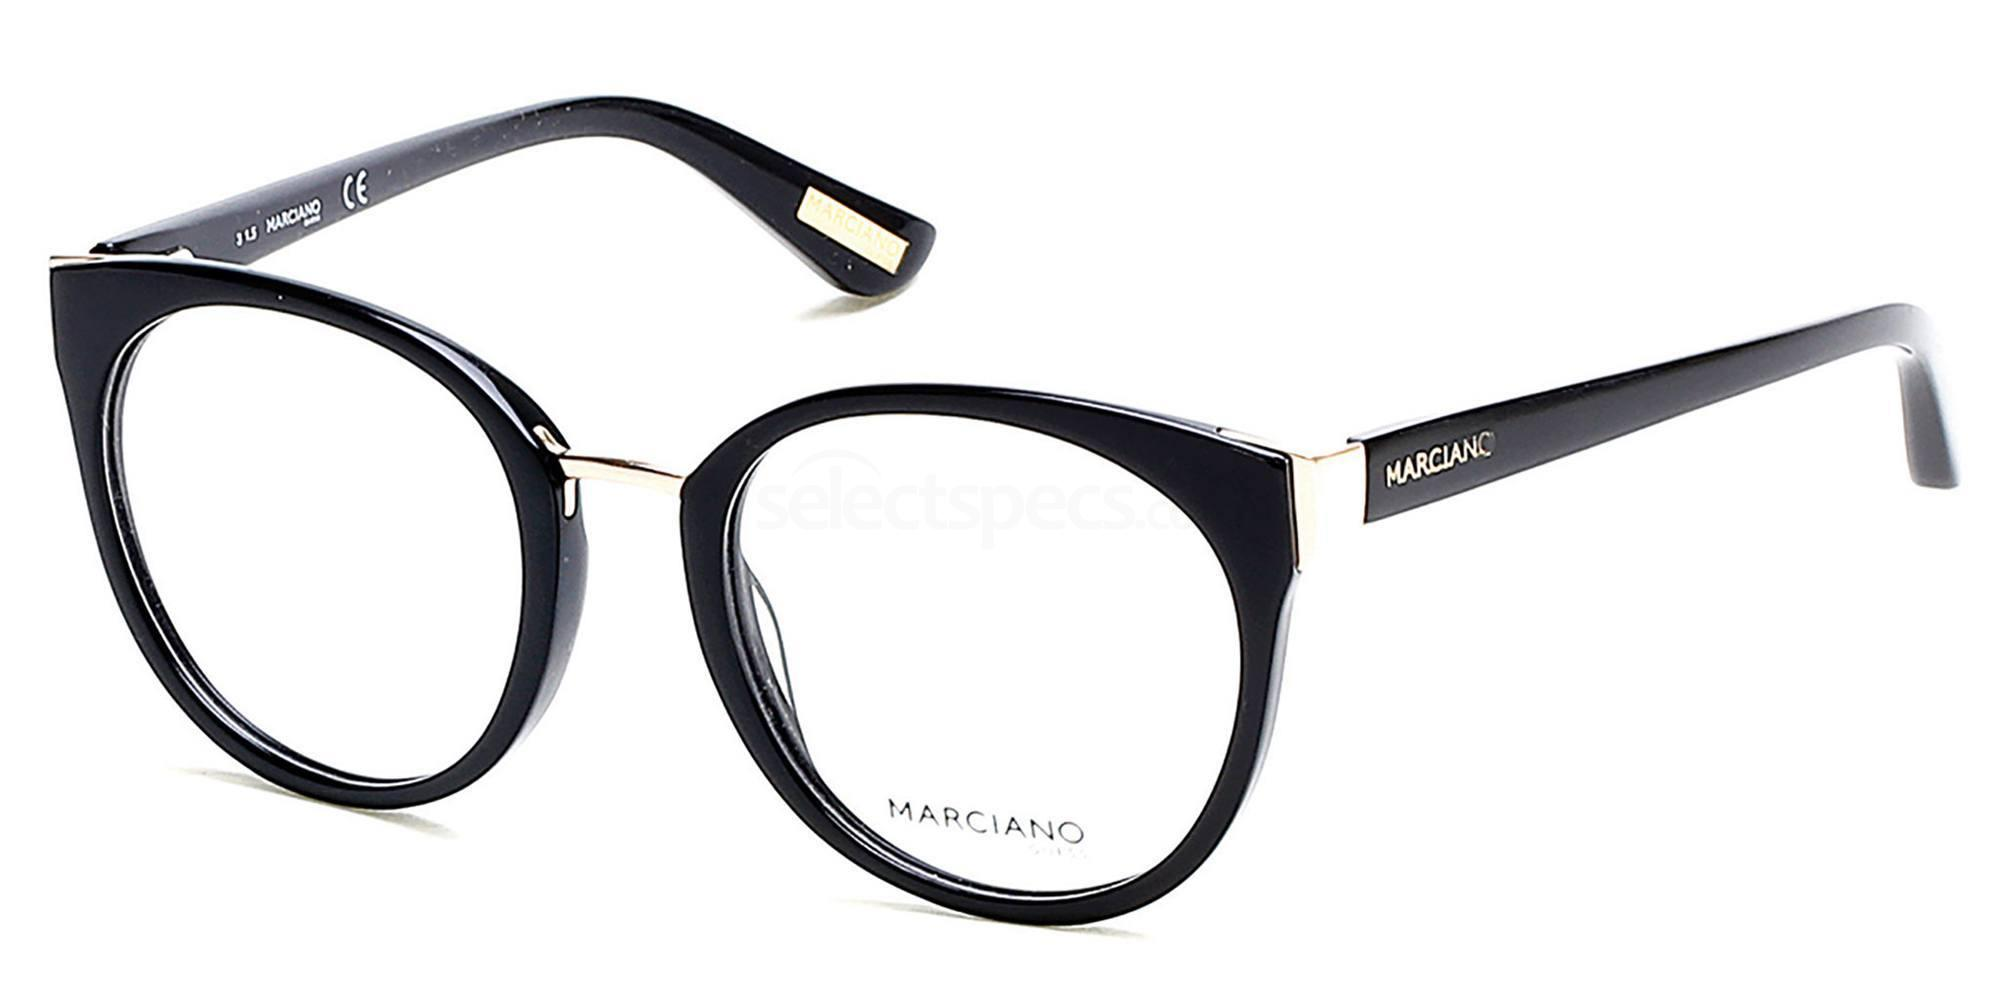 001 GM0285 Glasses, Guess by Marciano